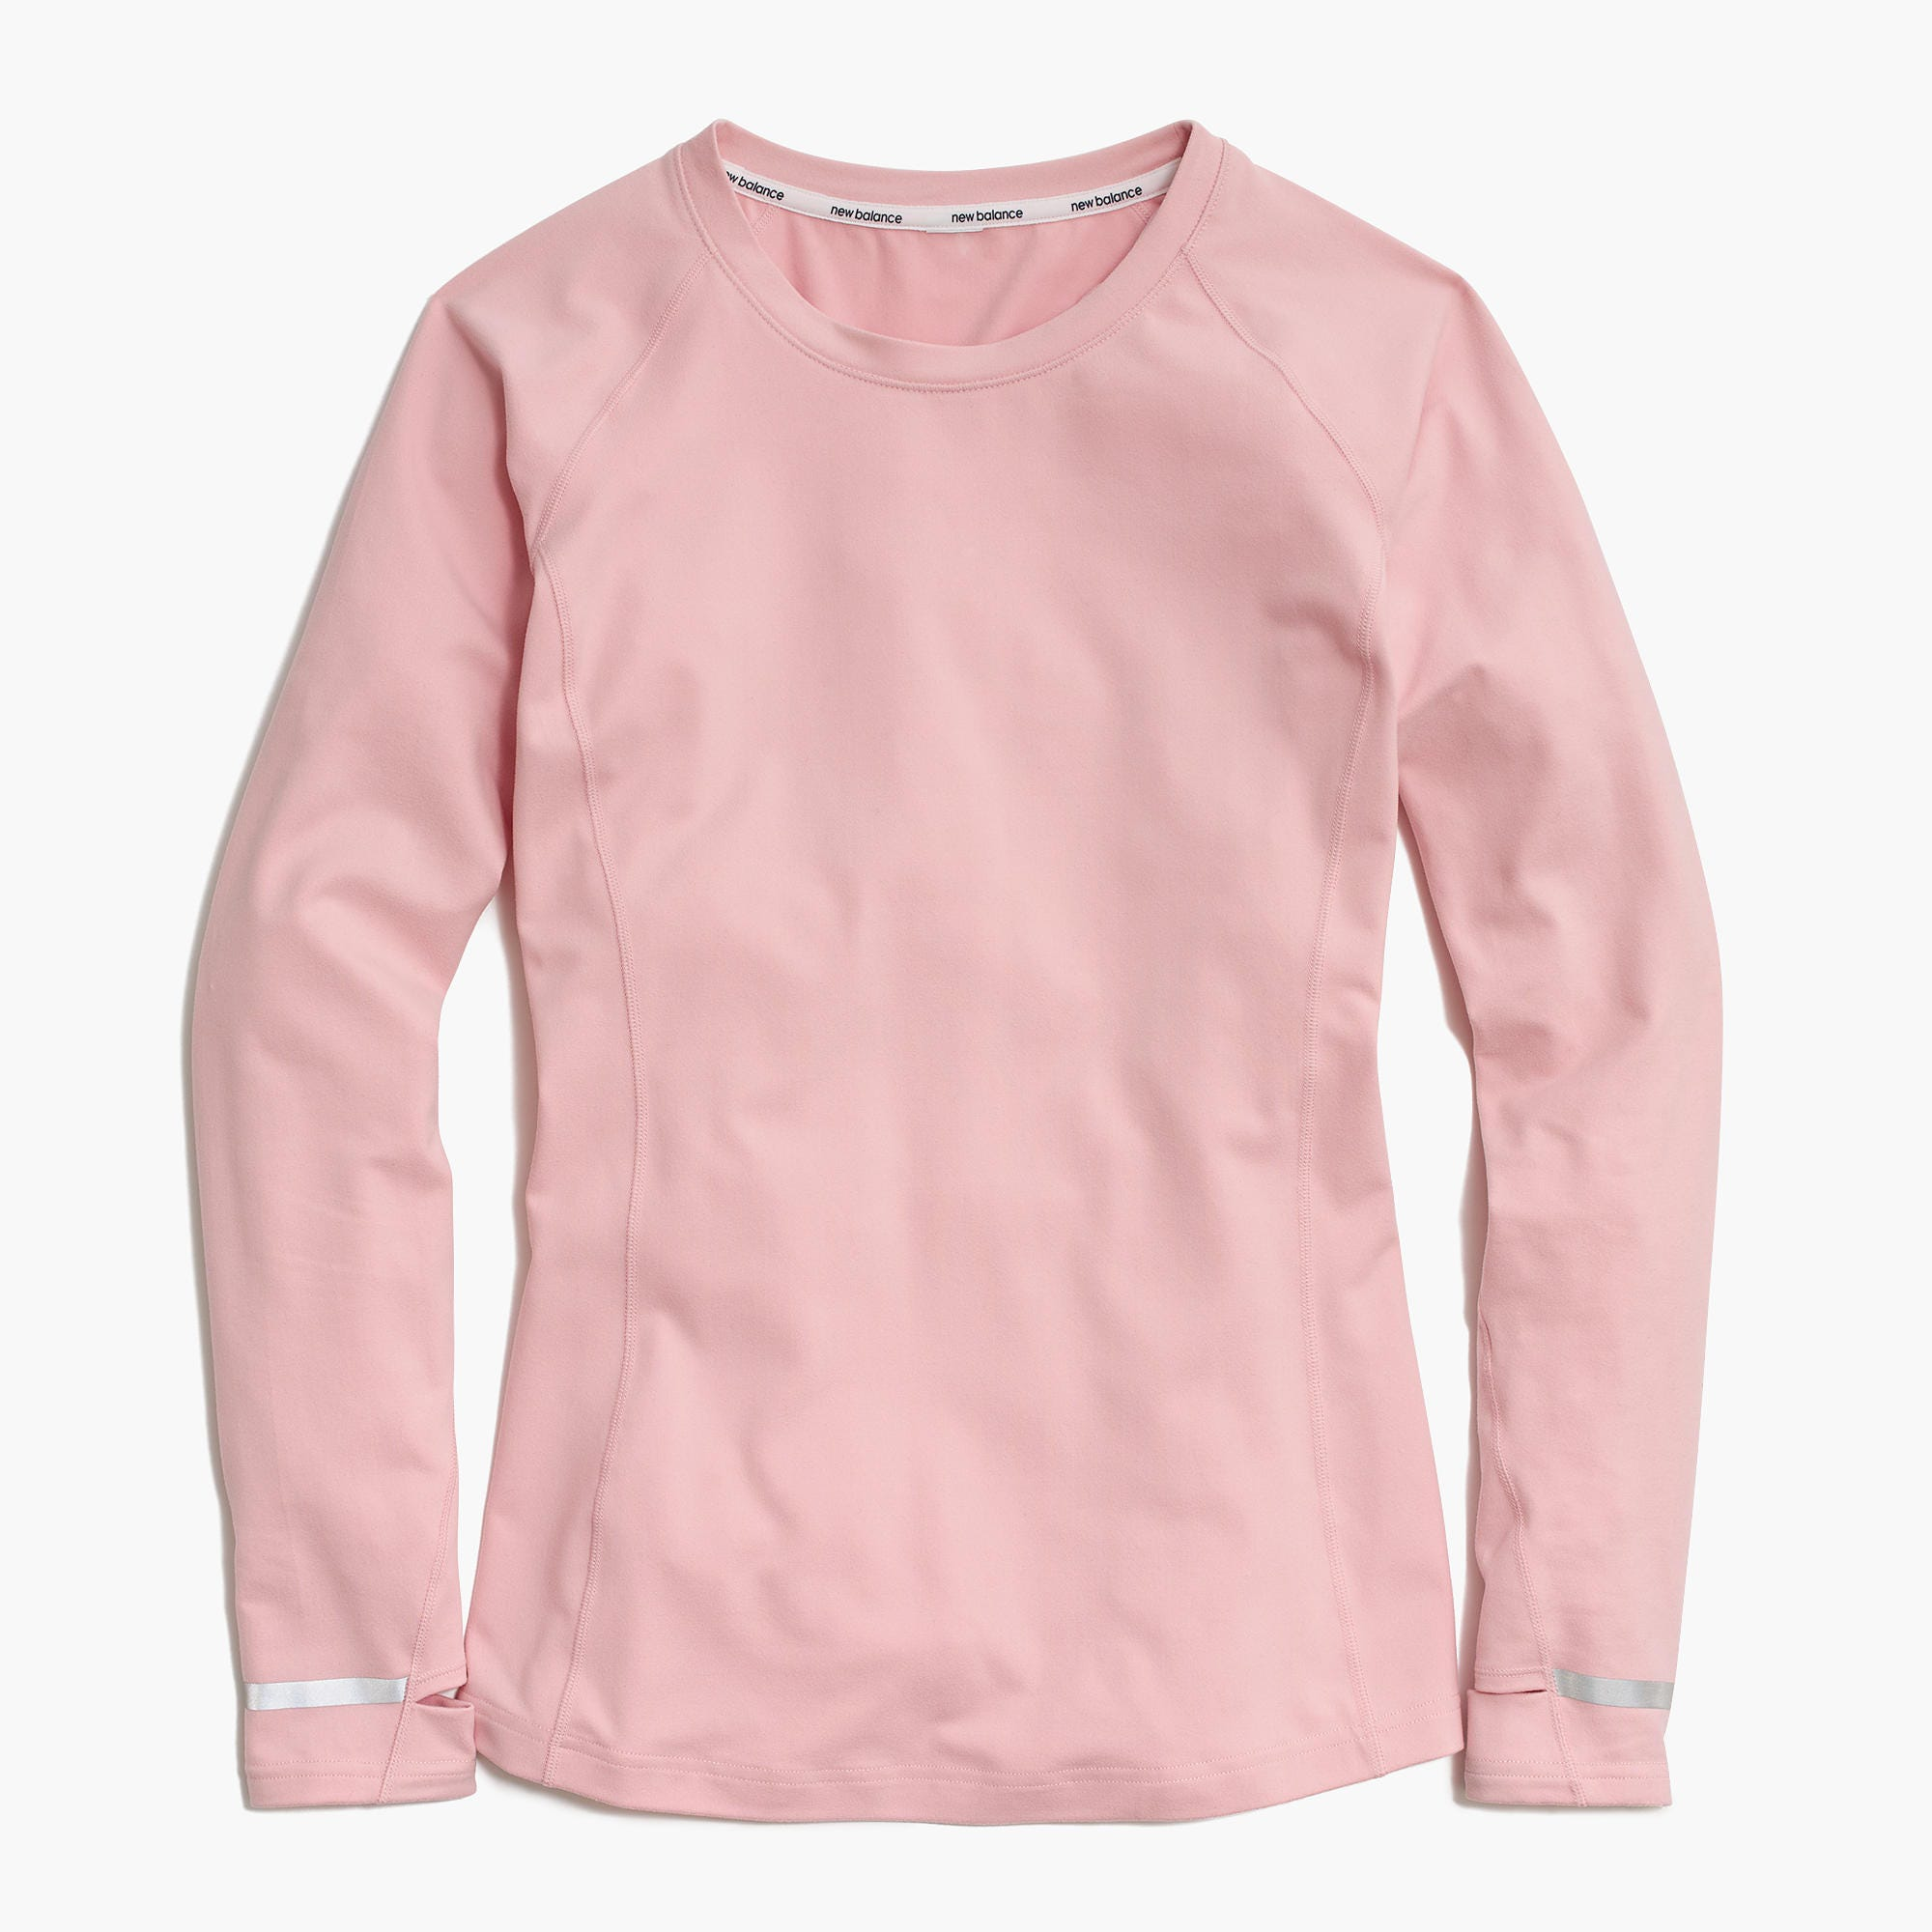 f98025937eca2 New Balance J Crew Collection - Cute Workout Clothing